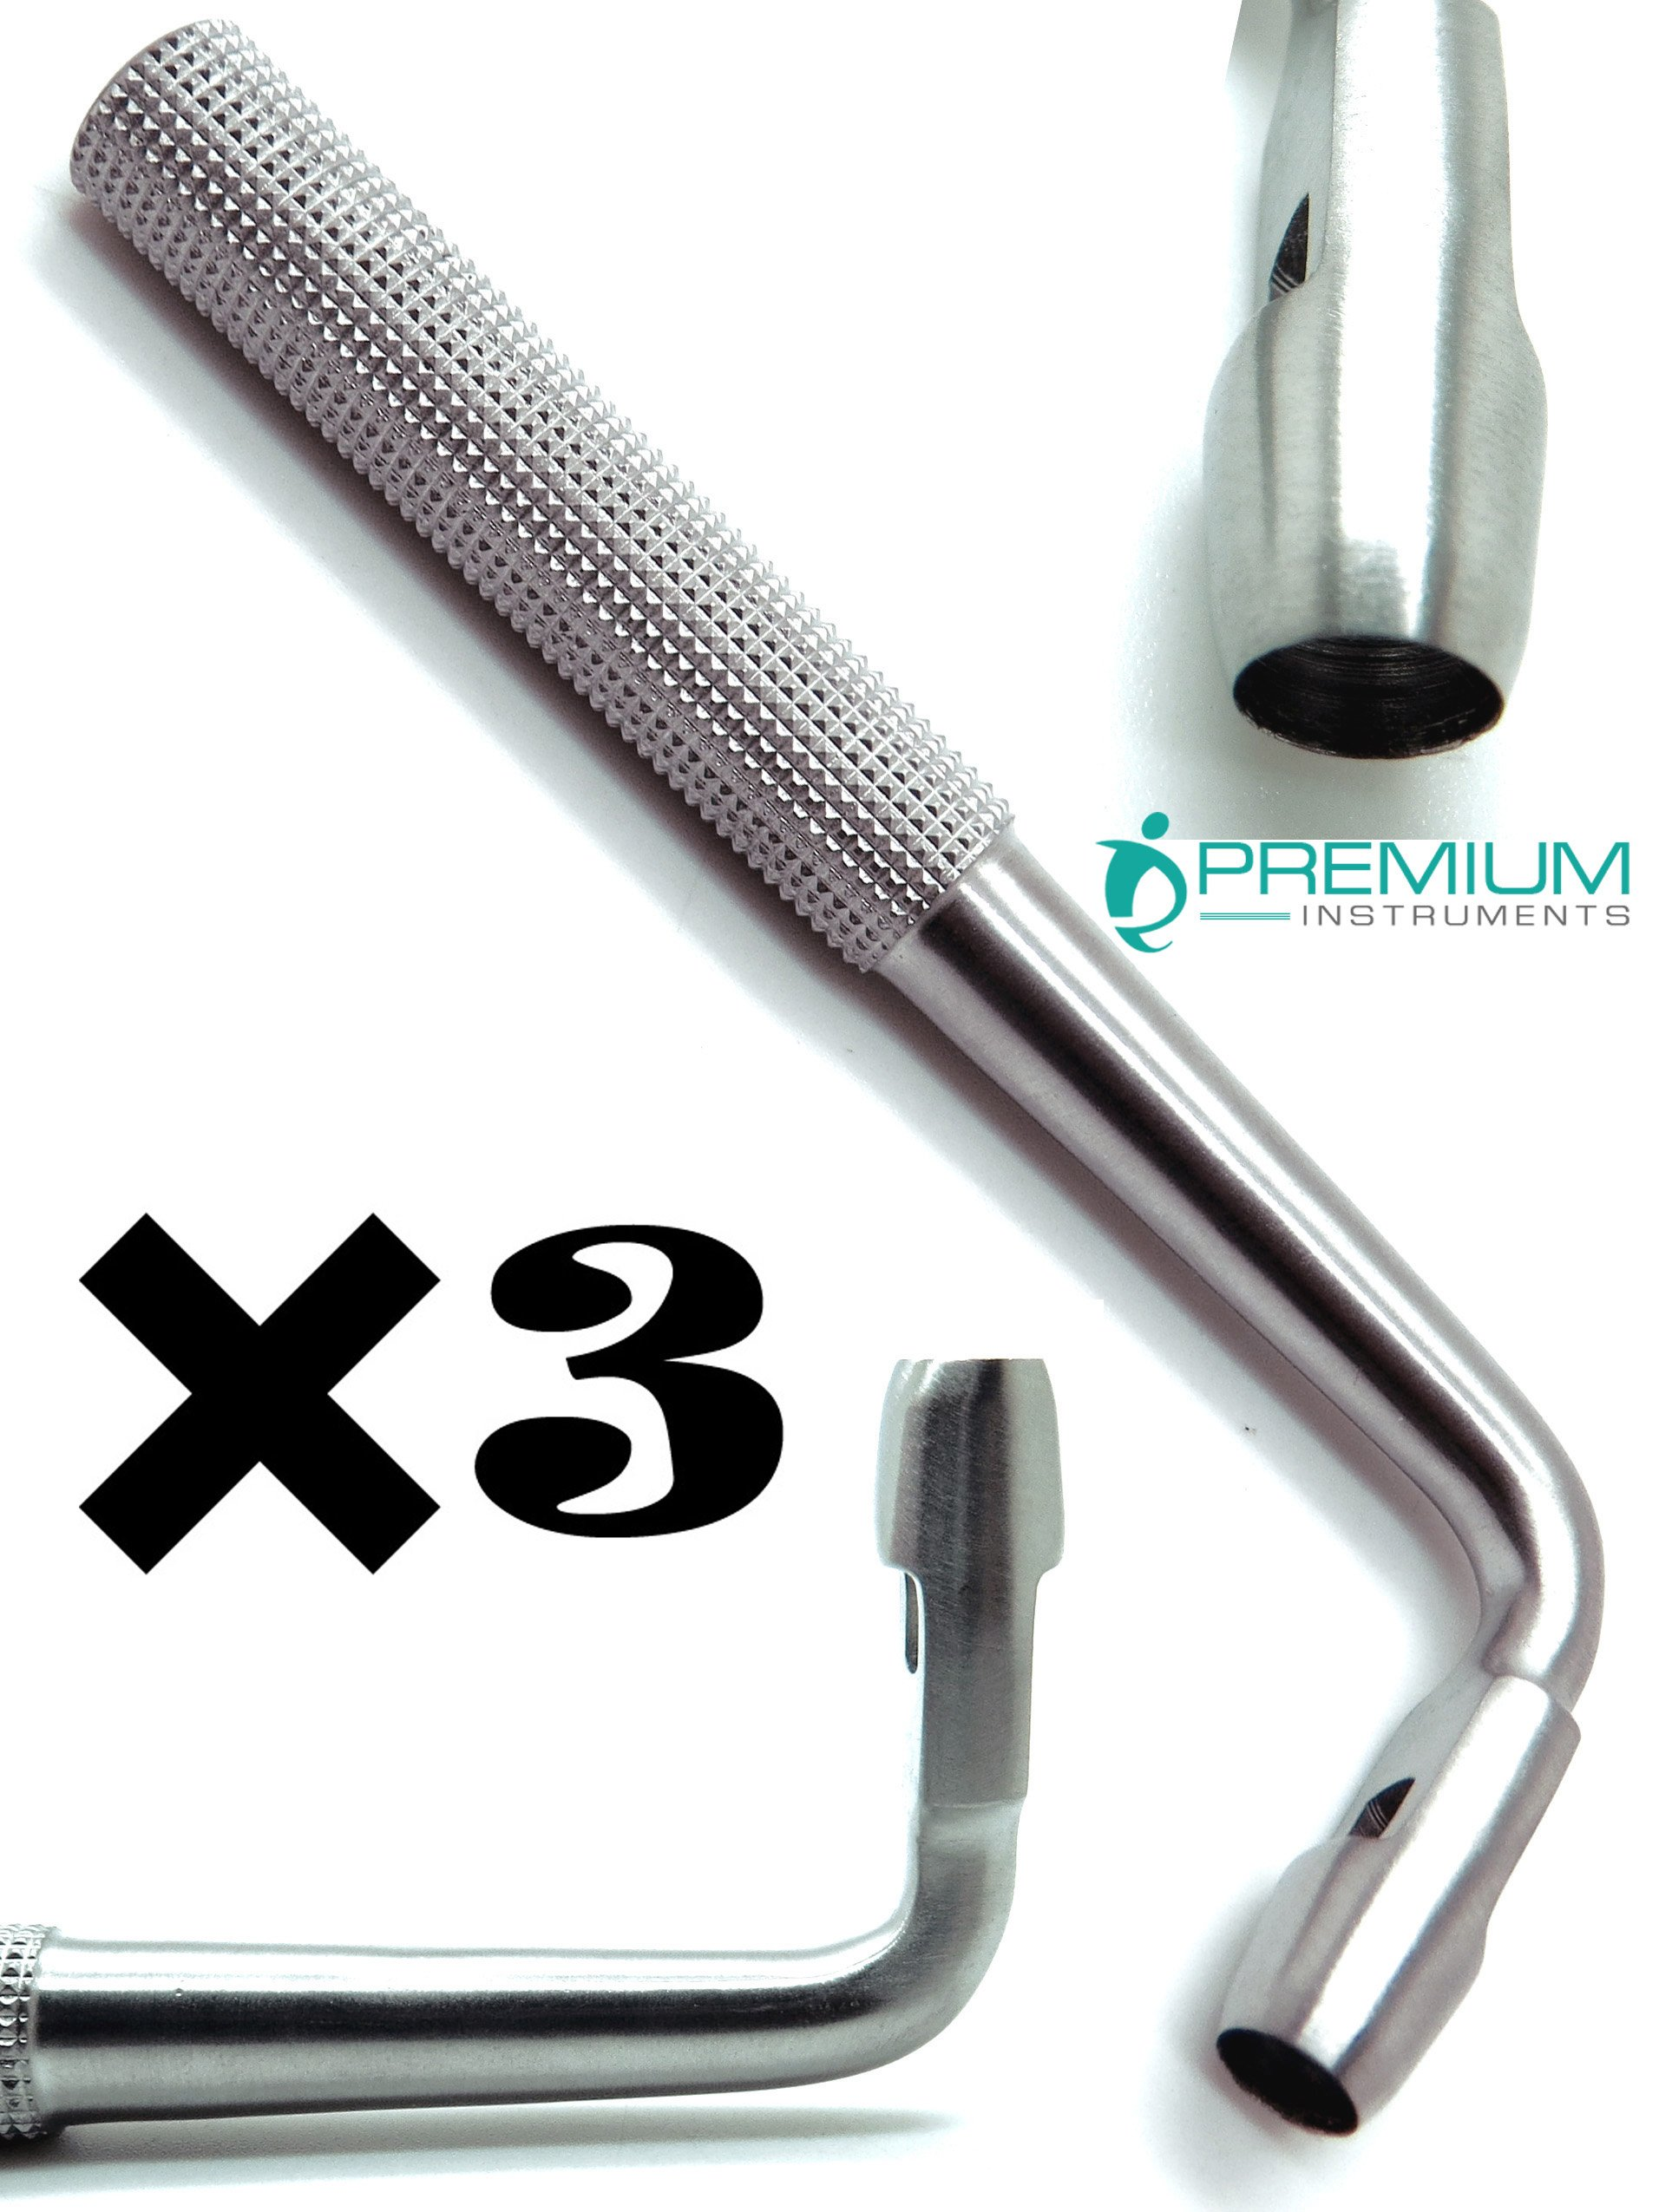 3× Dental Tissue Punch Angled 6mm Surgical Implant Stainless Steel Instruments